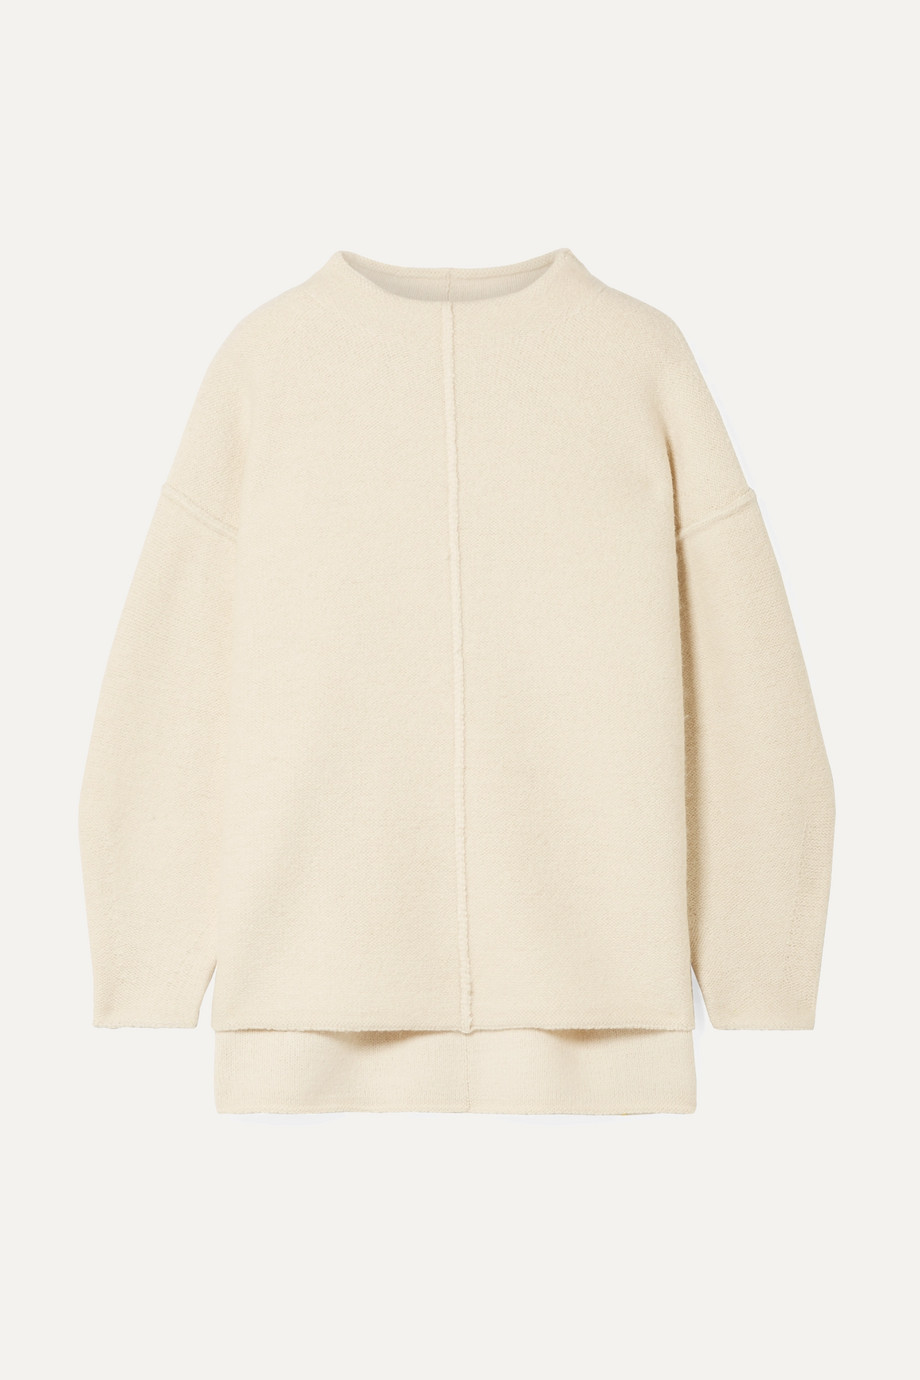 Co Oversized alpaca and wool-blend sweater